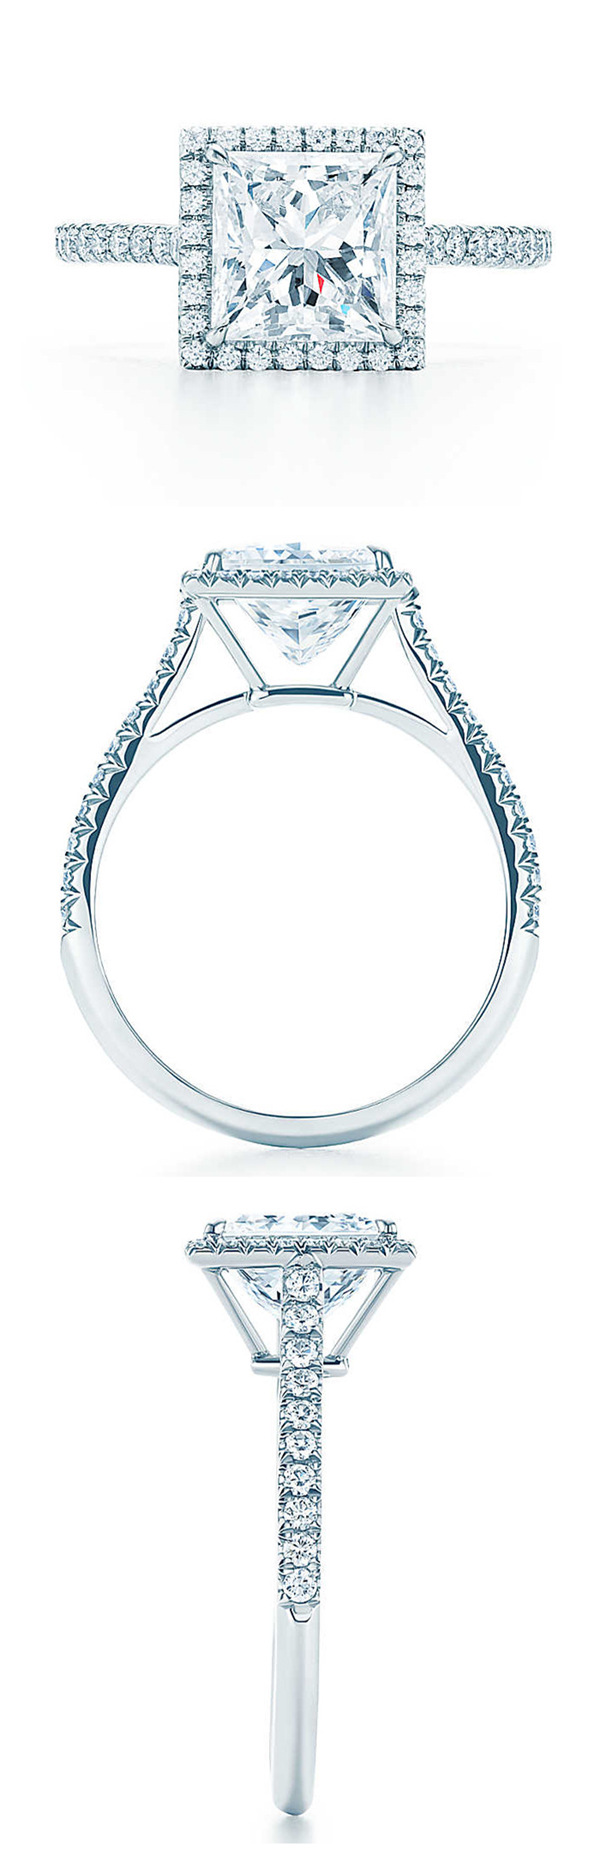 Tiffany princess cut halo wedding engagement rings